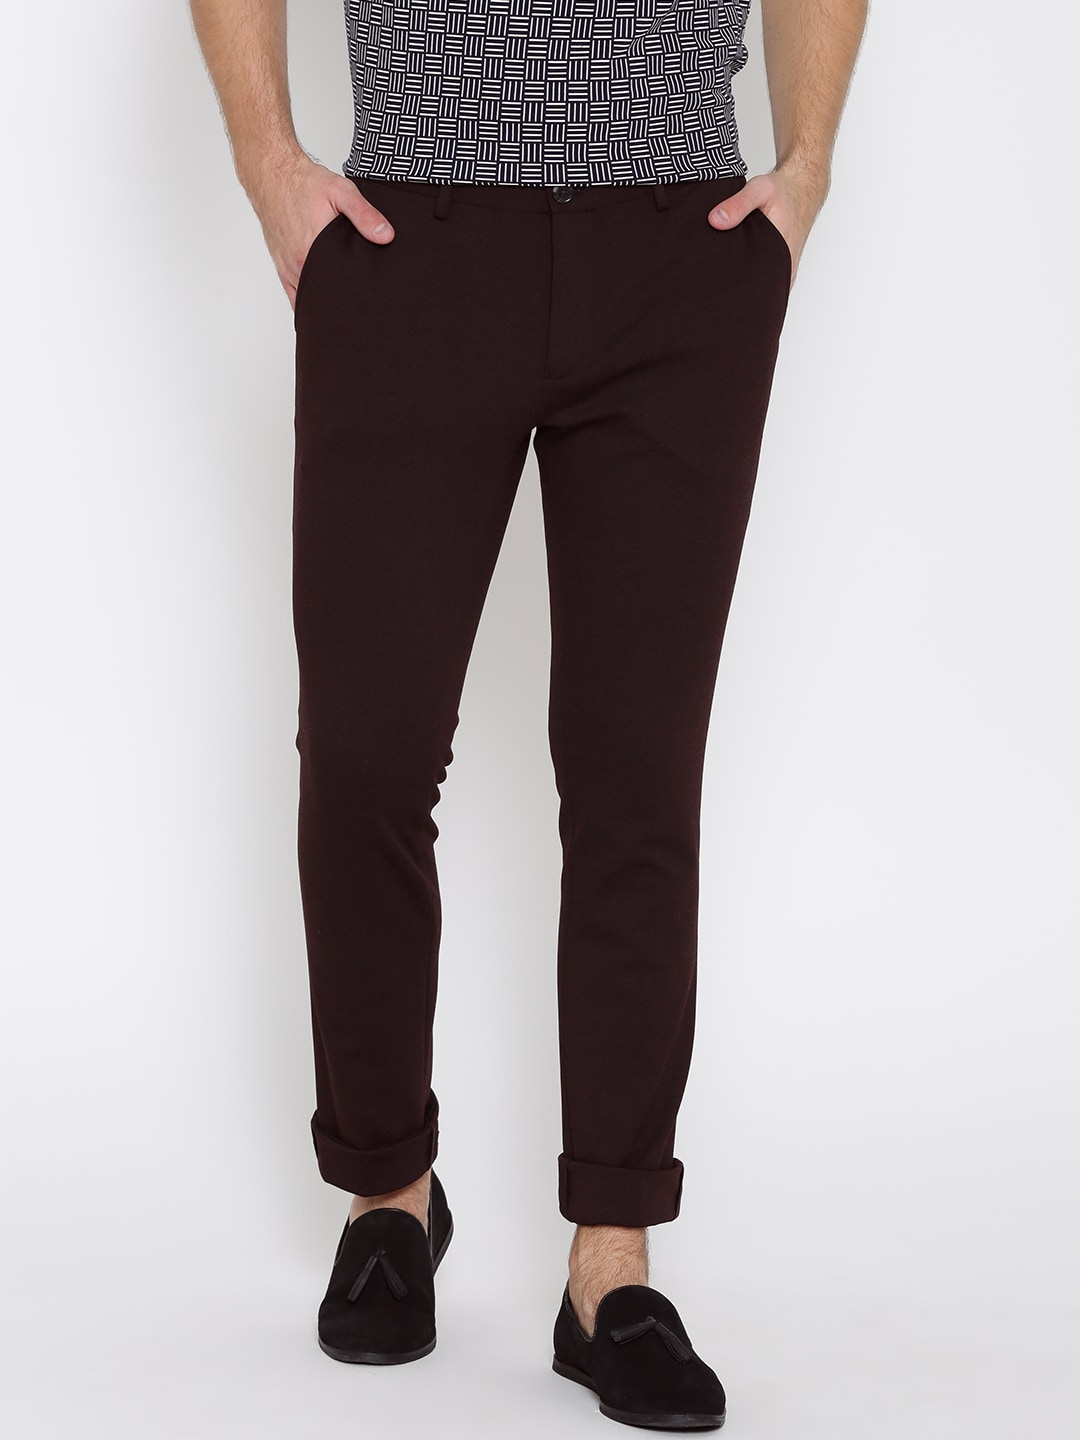 Men Burgundy Trousers Buy Men Burgundy Trousers Online In India